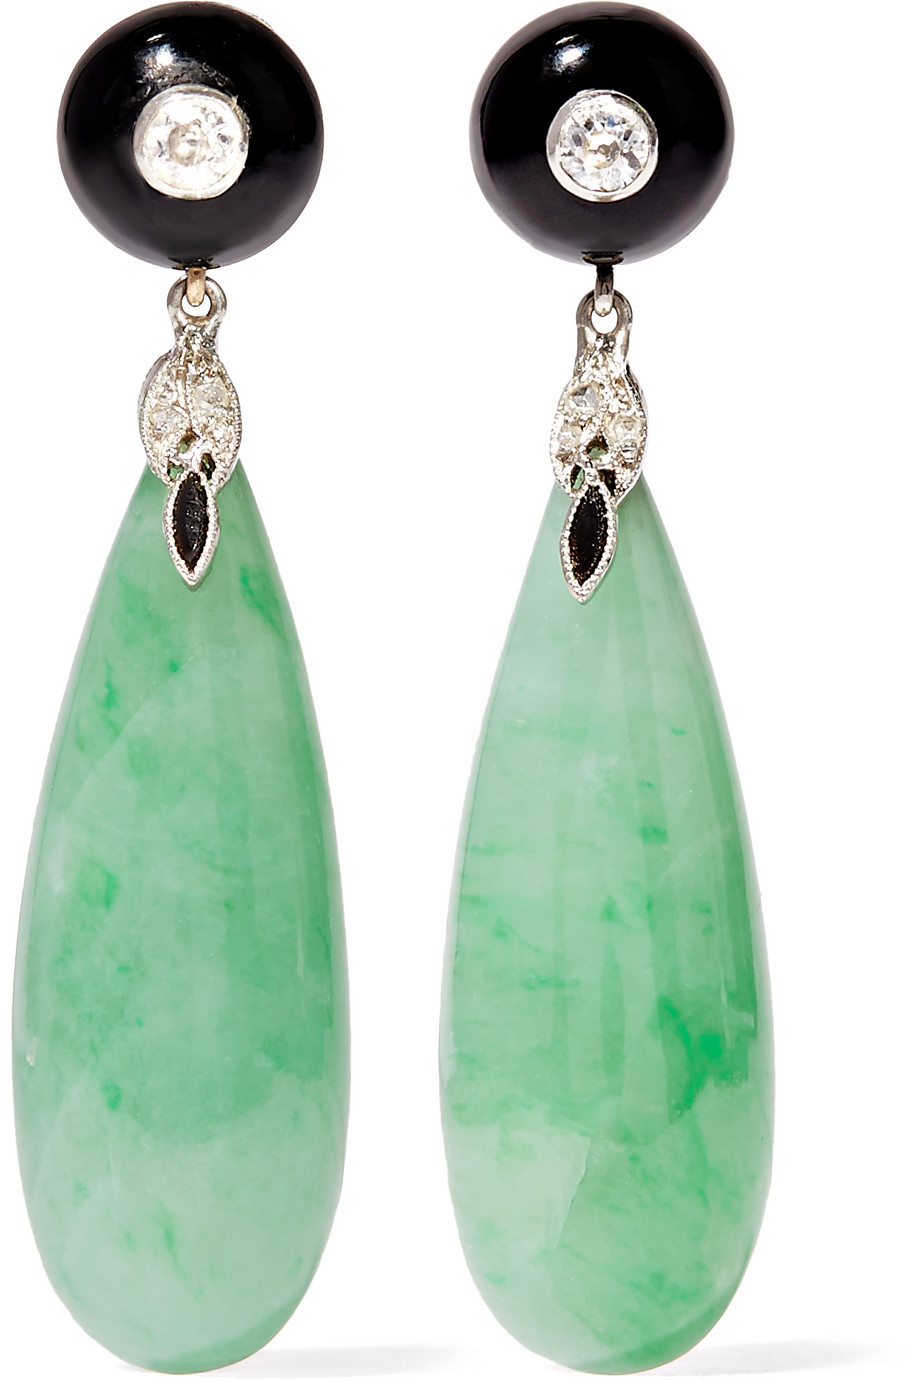 Fred Leighton Collection 18-Karat White Gold Multi-Stone Earrings, White Gold/Jade, Women's